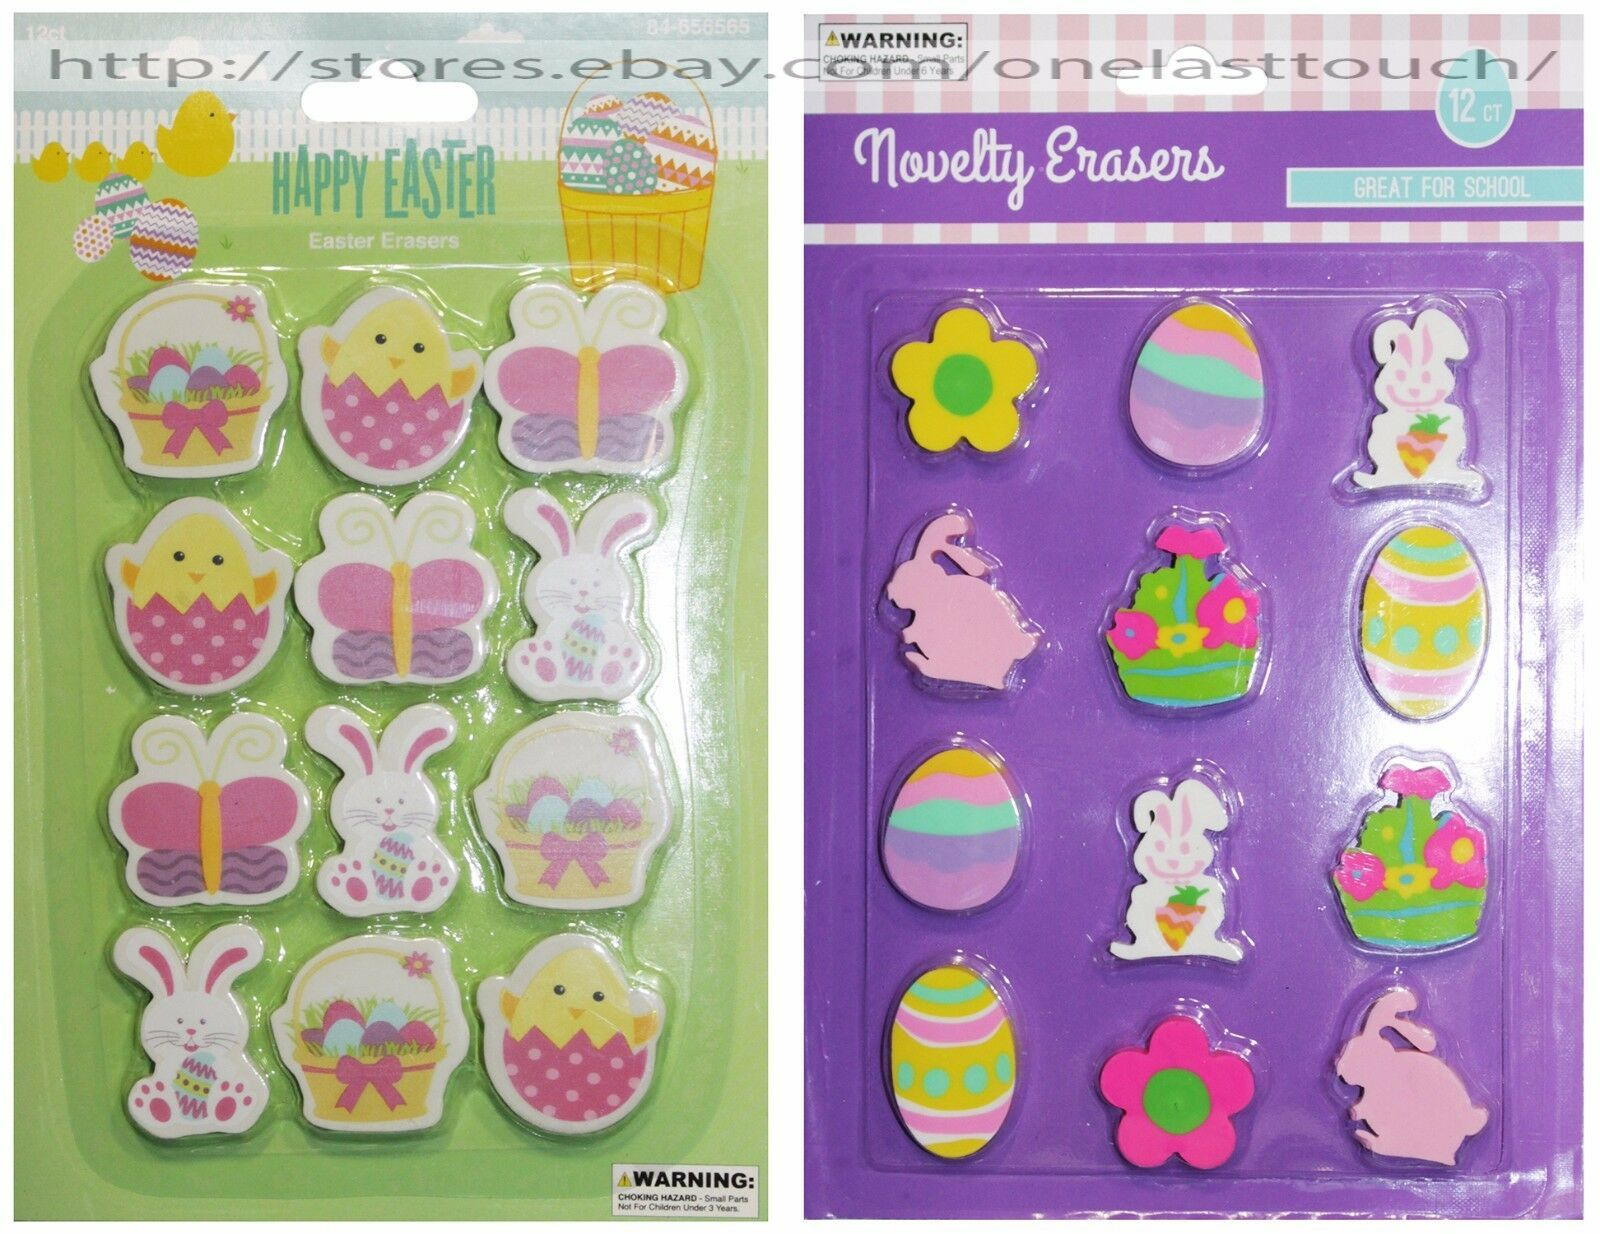 MOMENTUM* 12pc EASTER Bunnies+Chicks+Eggs+More NOVELTY ERASERS New! *YOU CHOOSE*